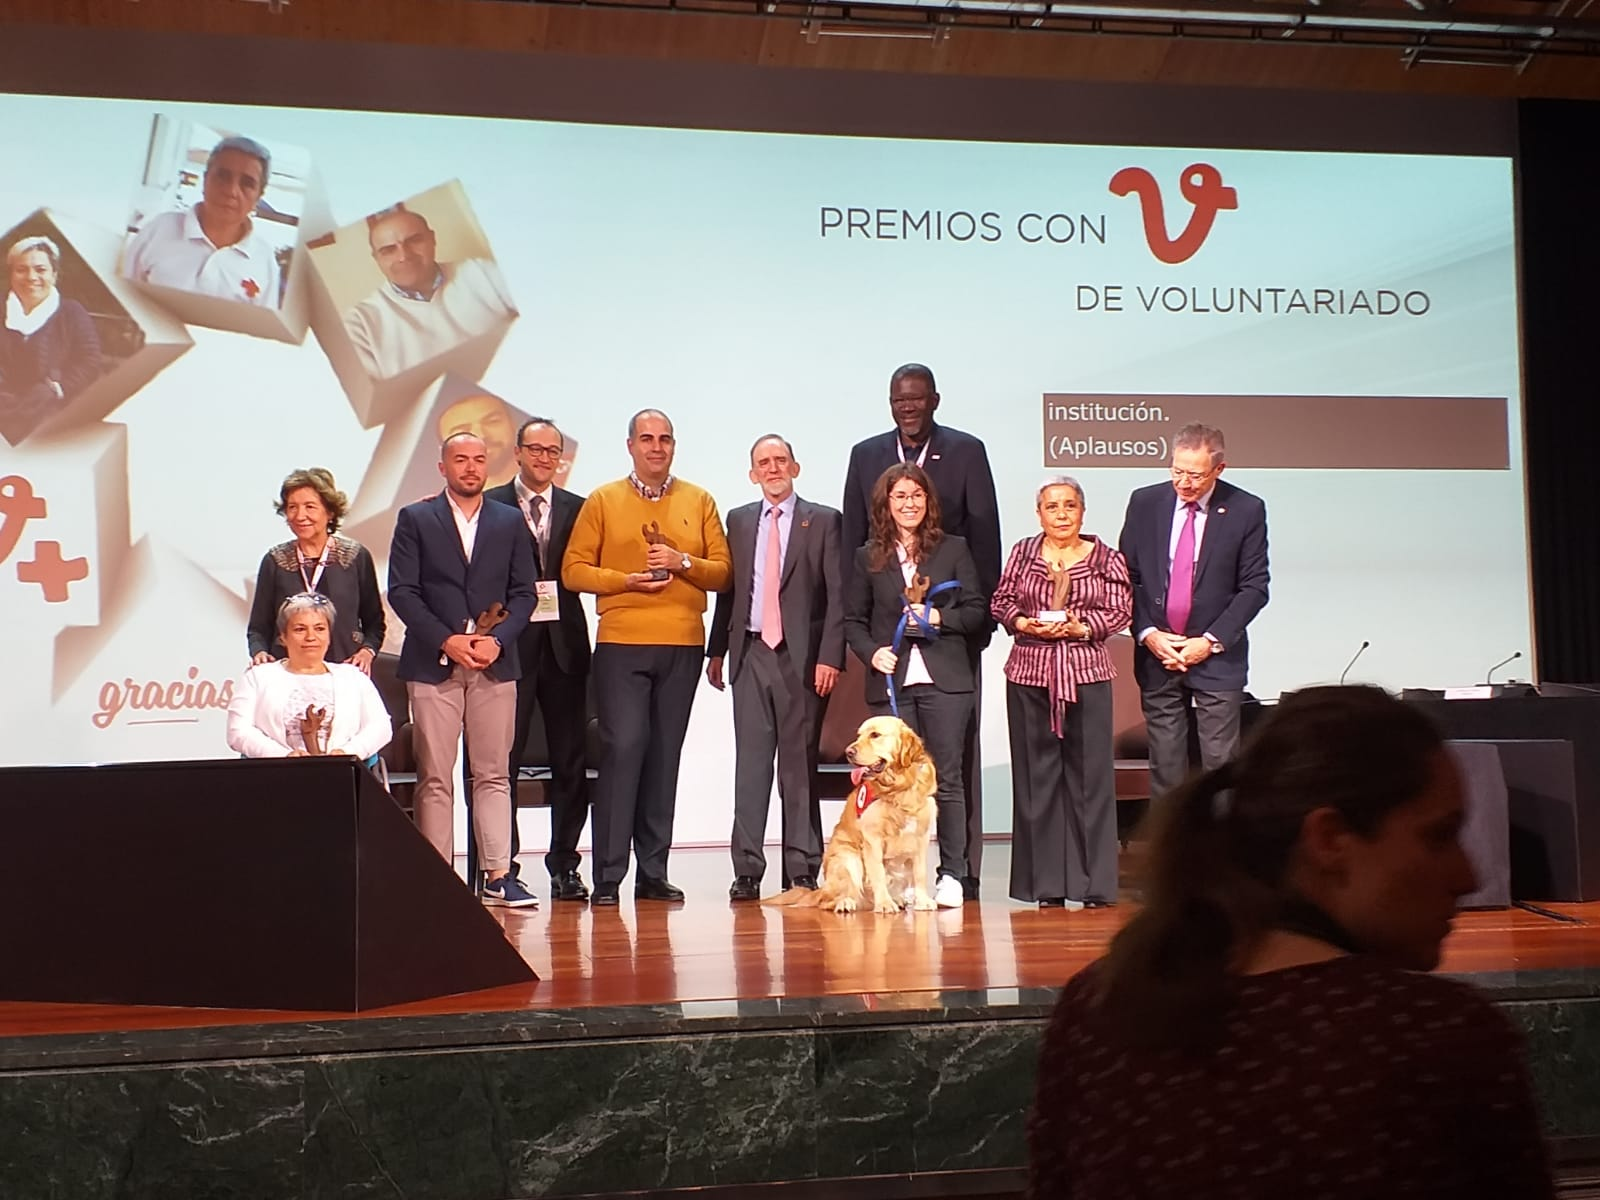 Cruz Roja Premio Voluntariado (2)